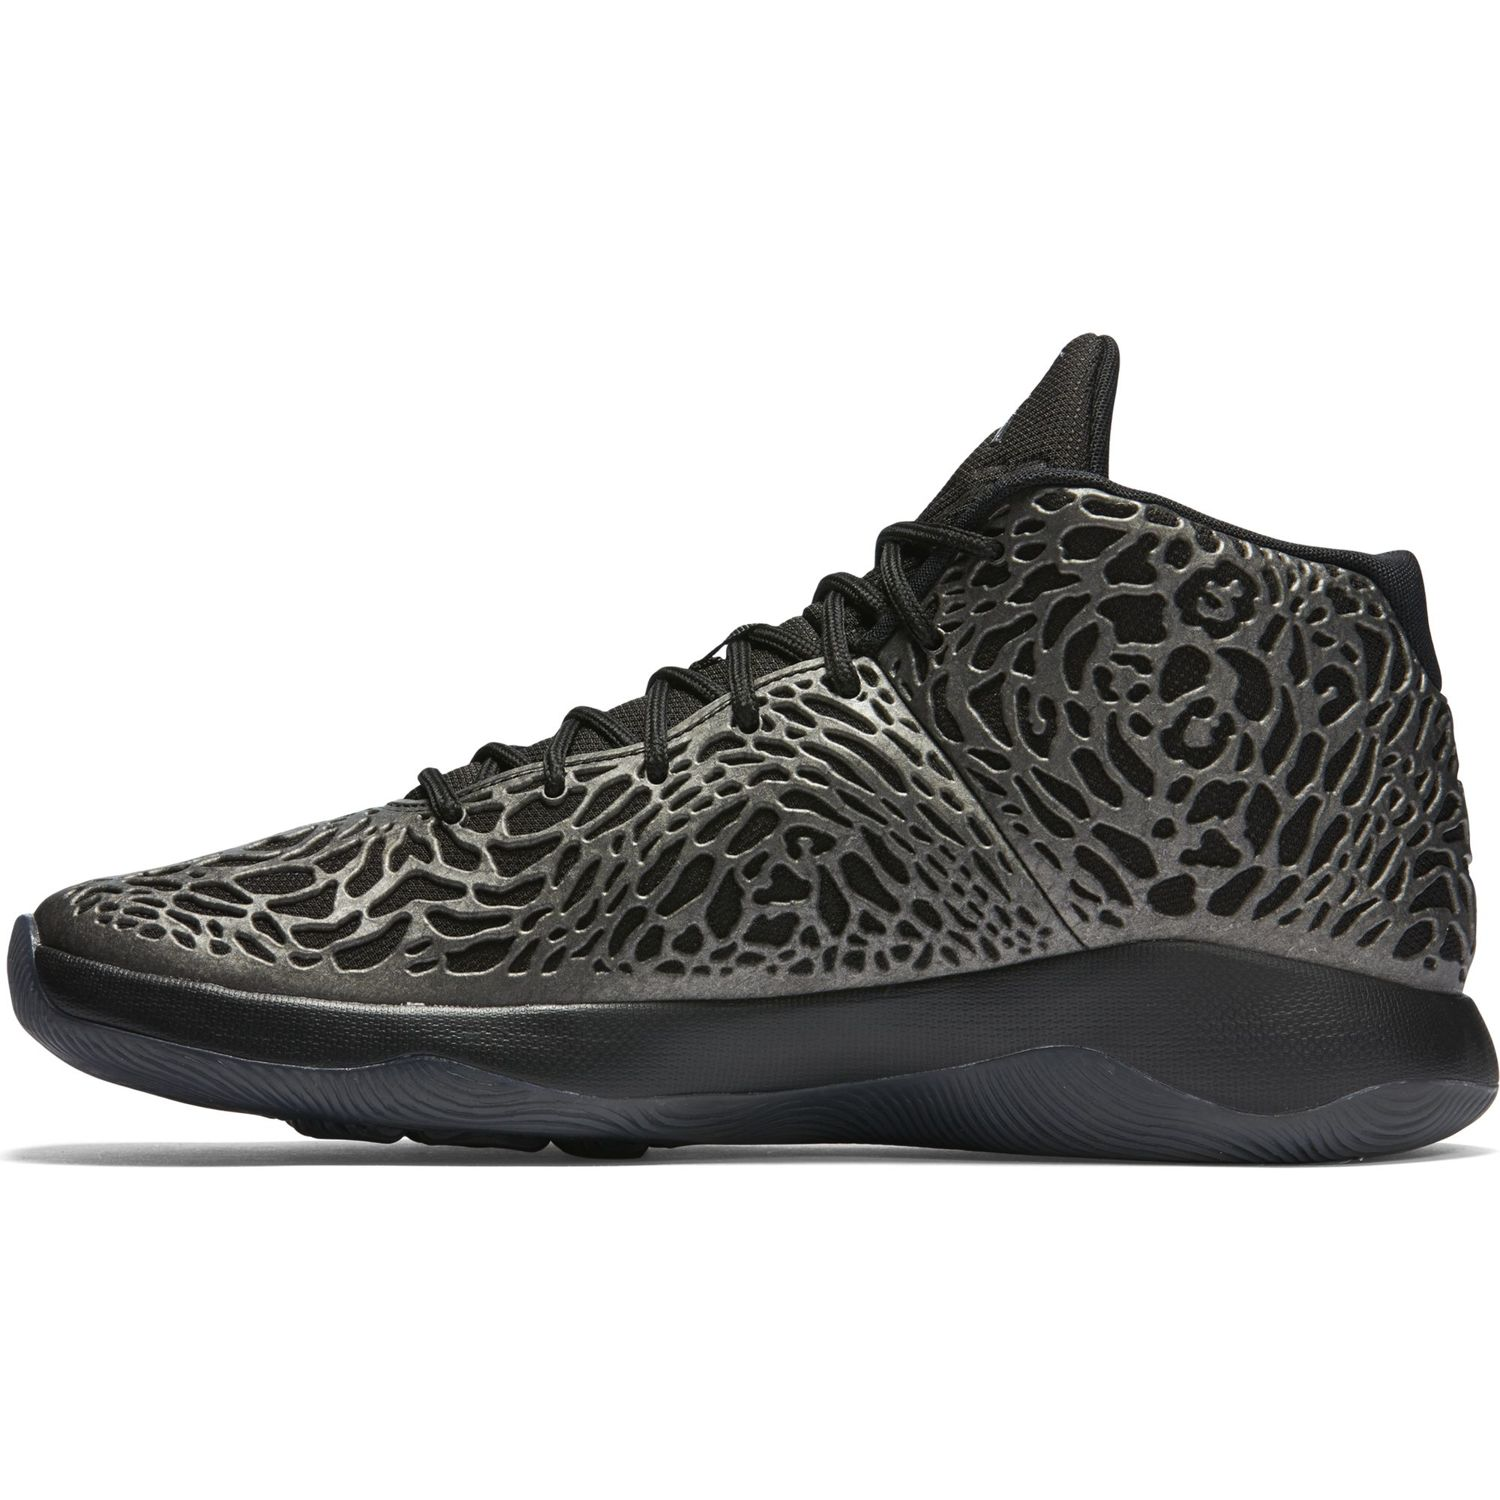 Jordan Ultra.Fly Black/Metallic Hematite 834268 010